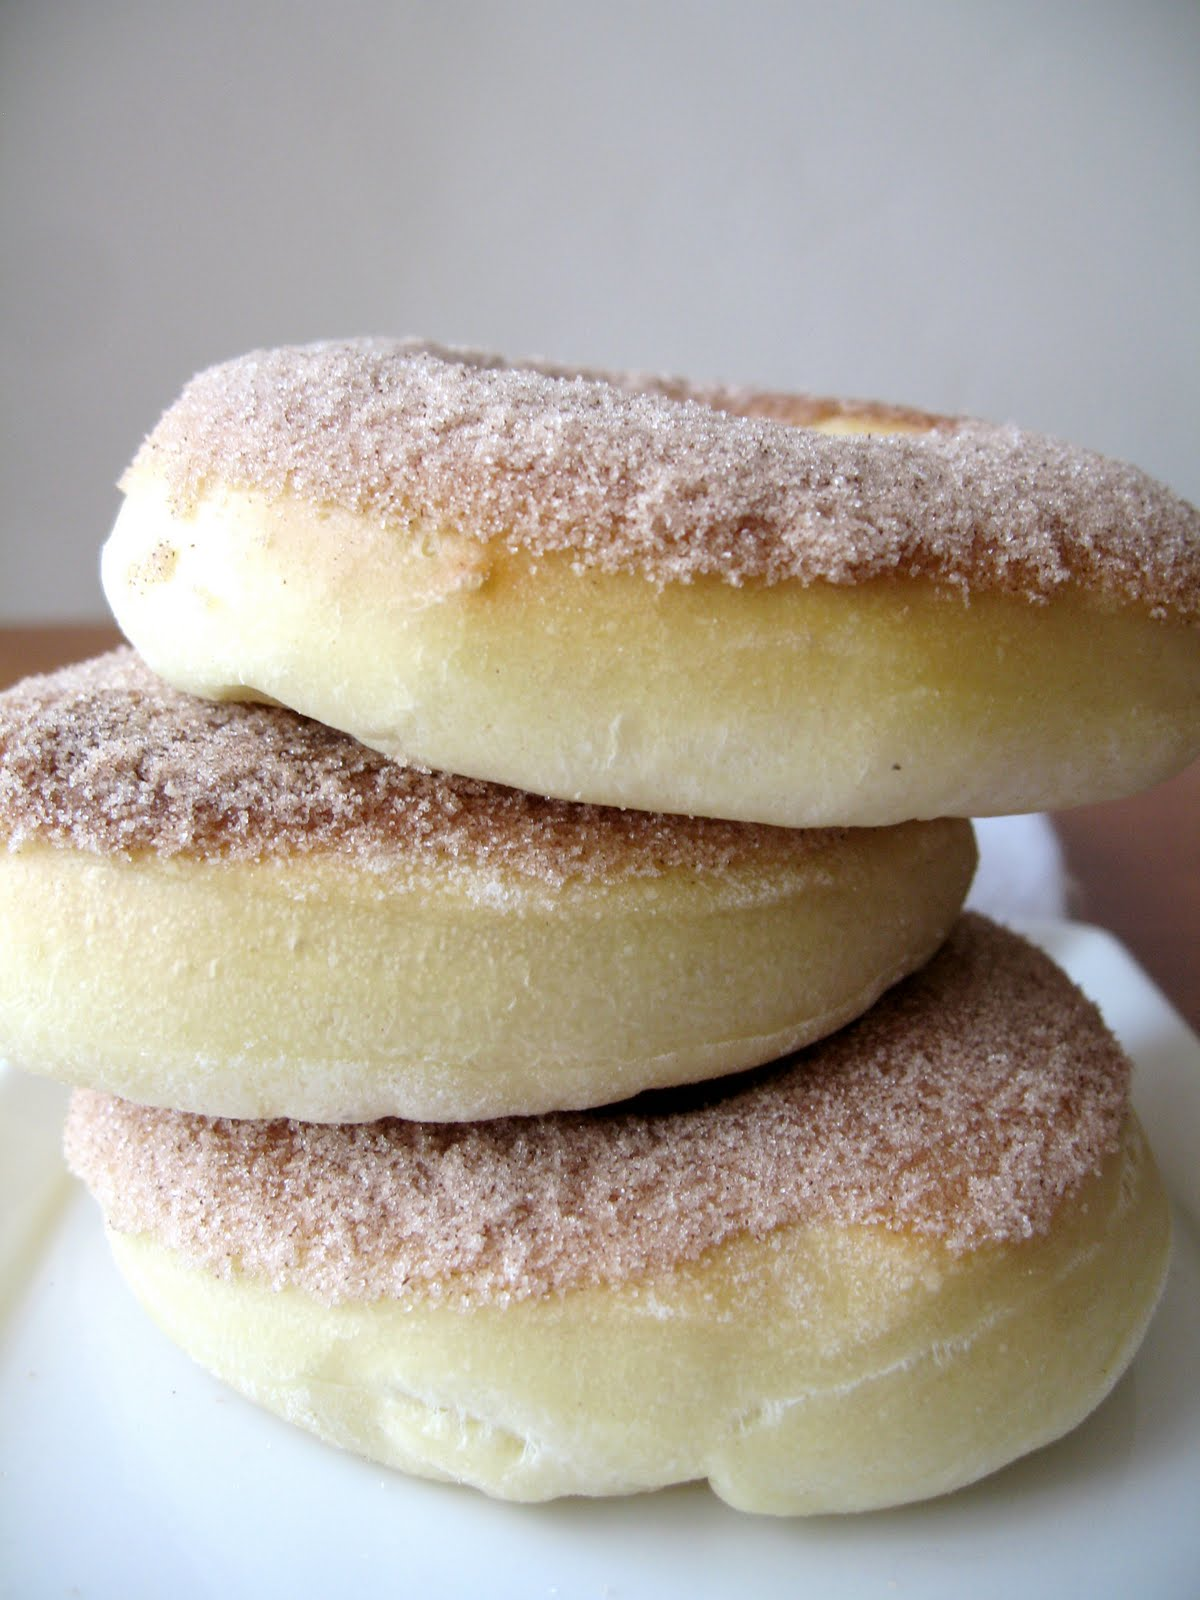 Apricosa: Baked donuts!